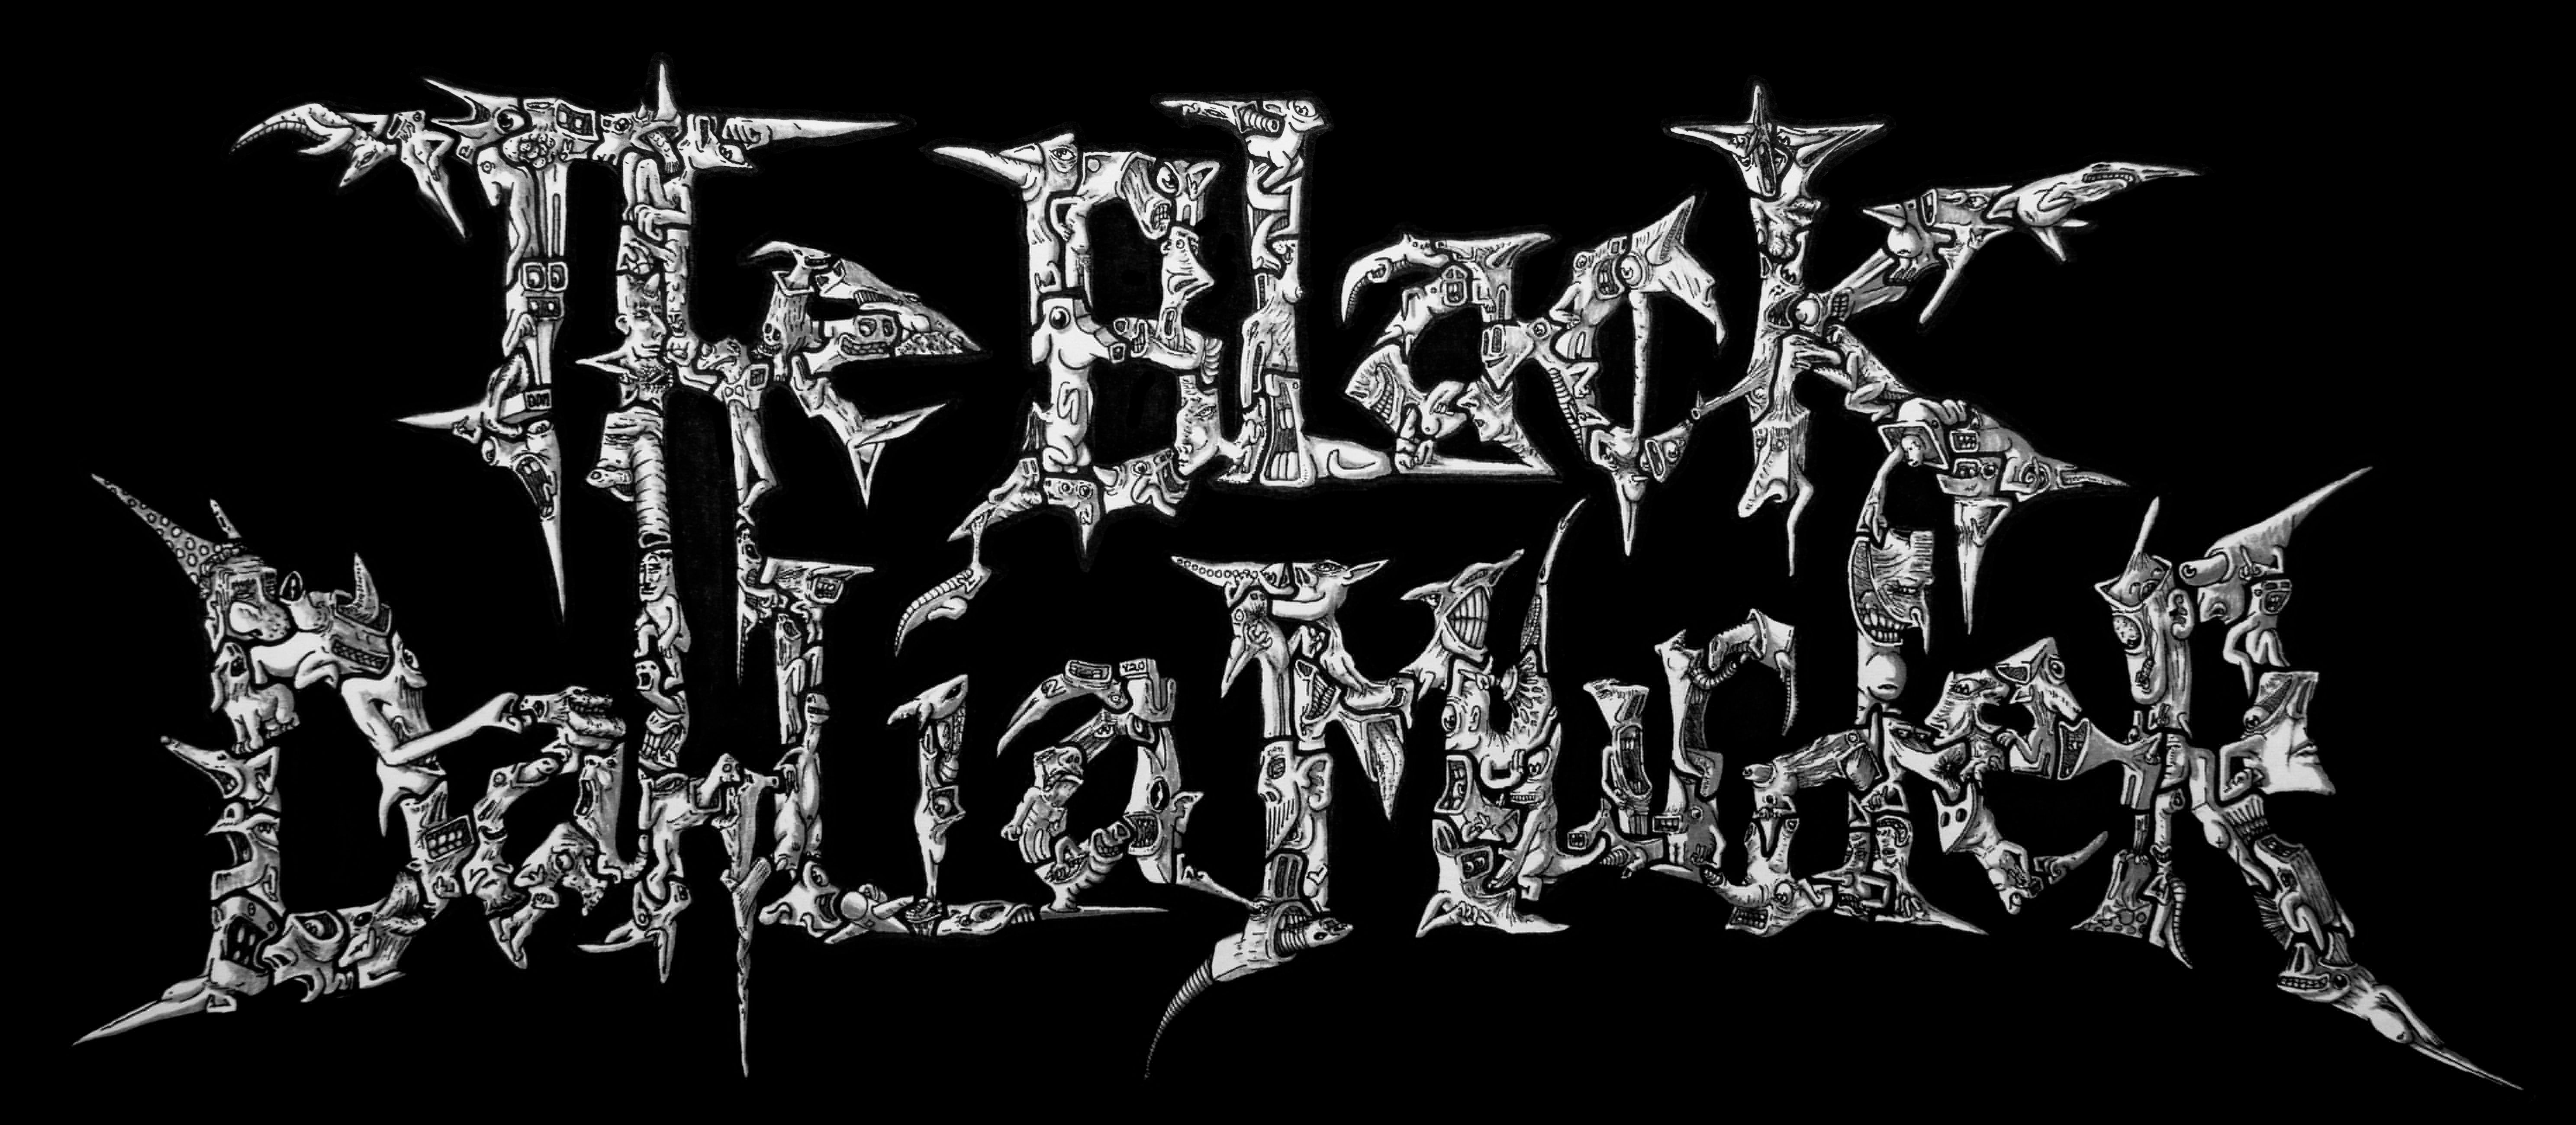 Mobile Black Dahlia Murder Pictures Full Hd